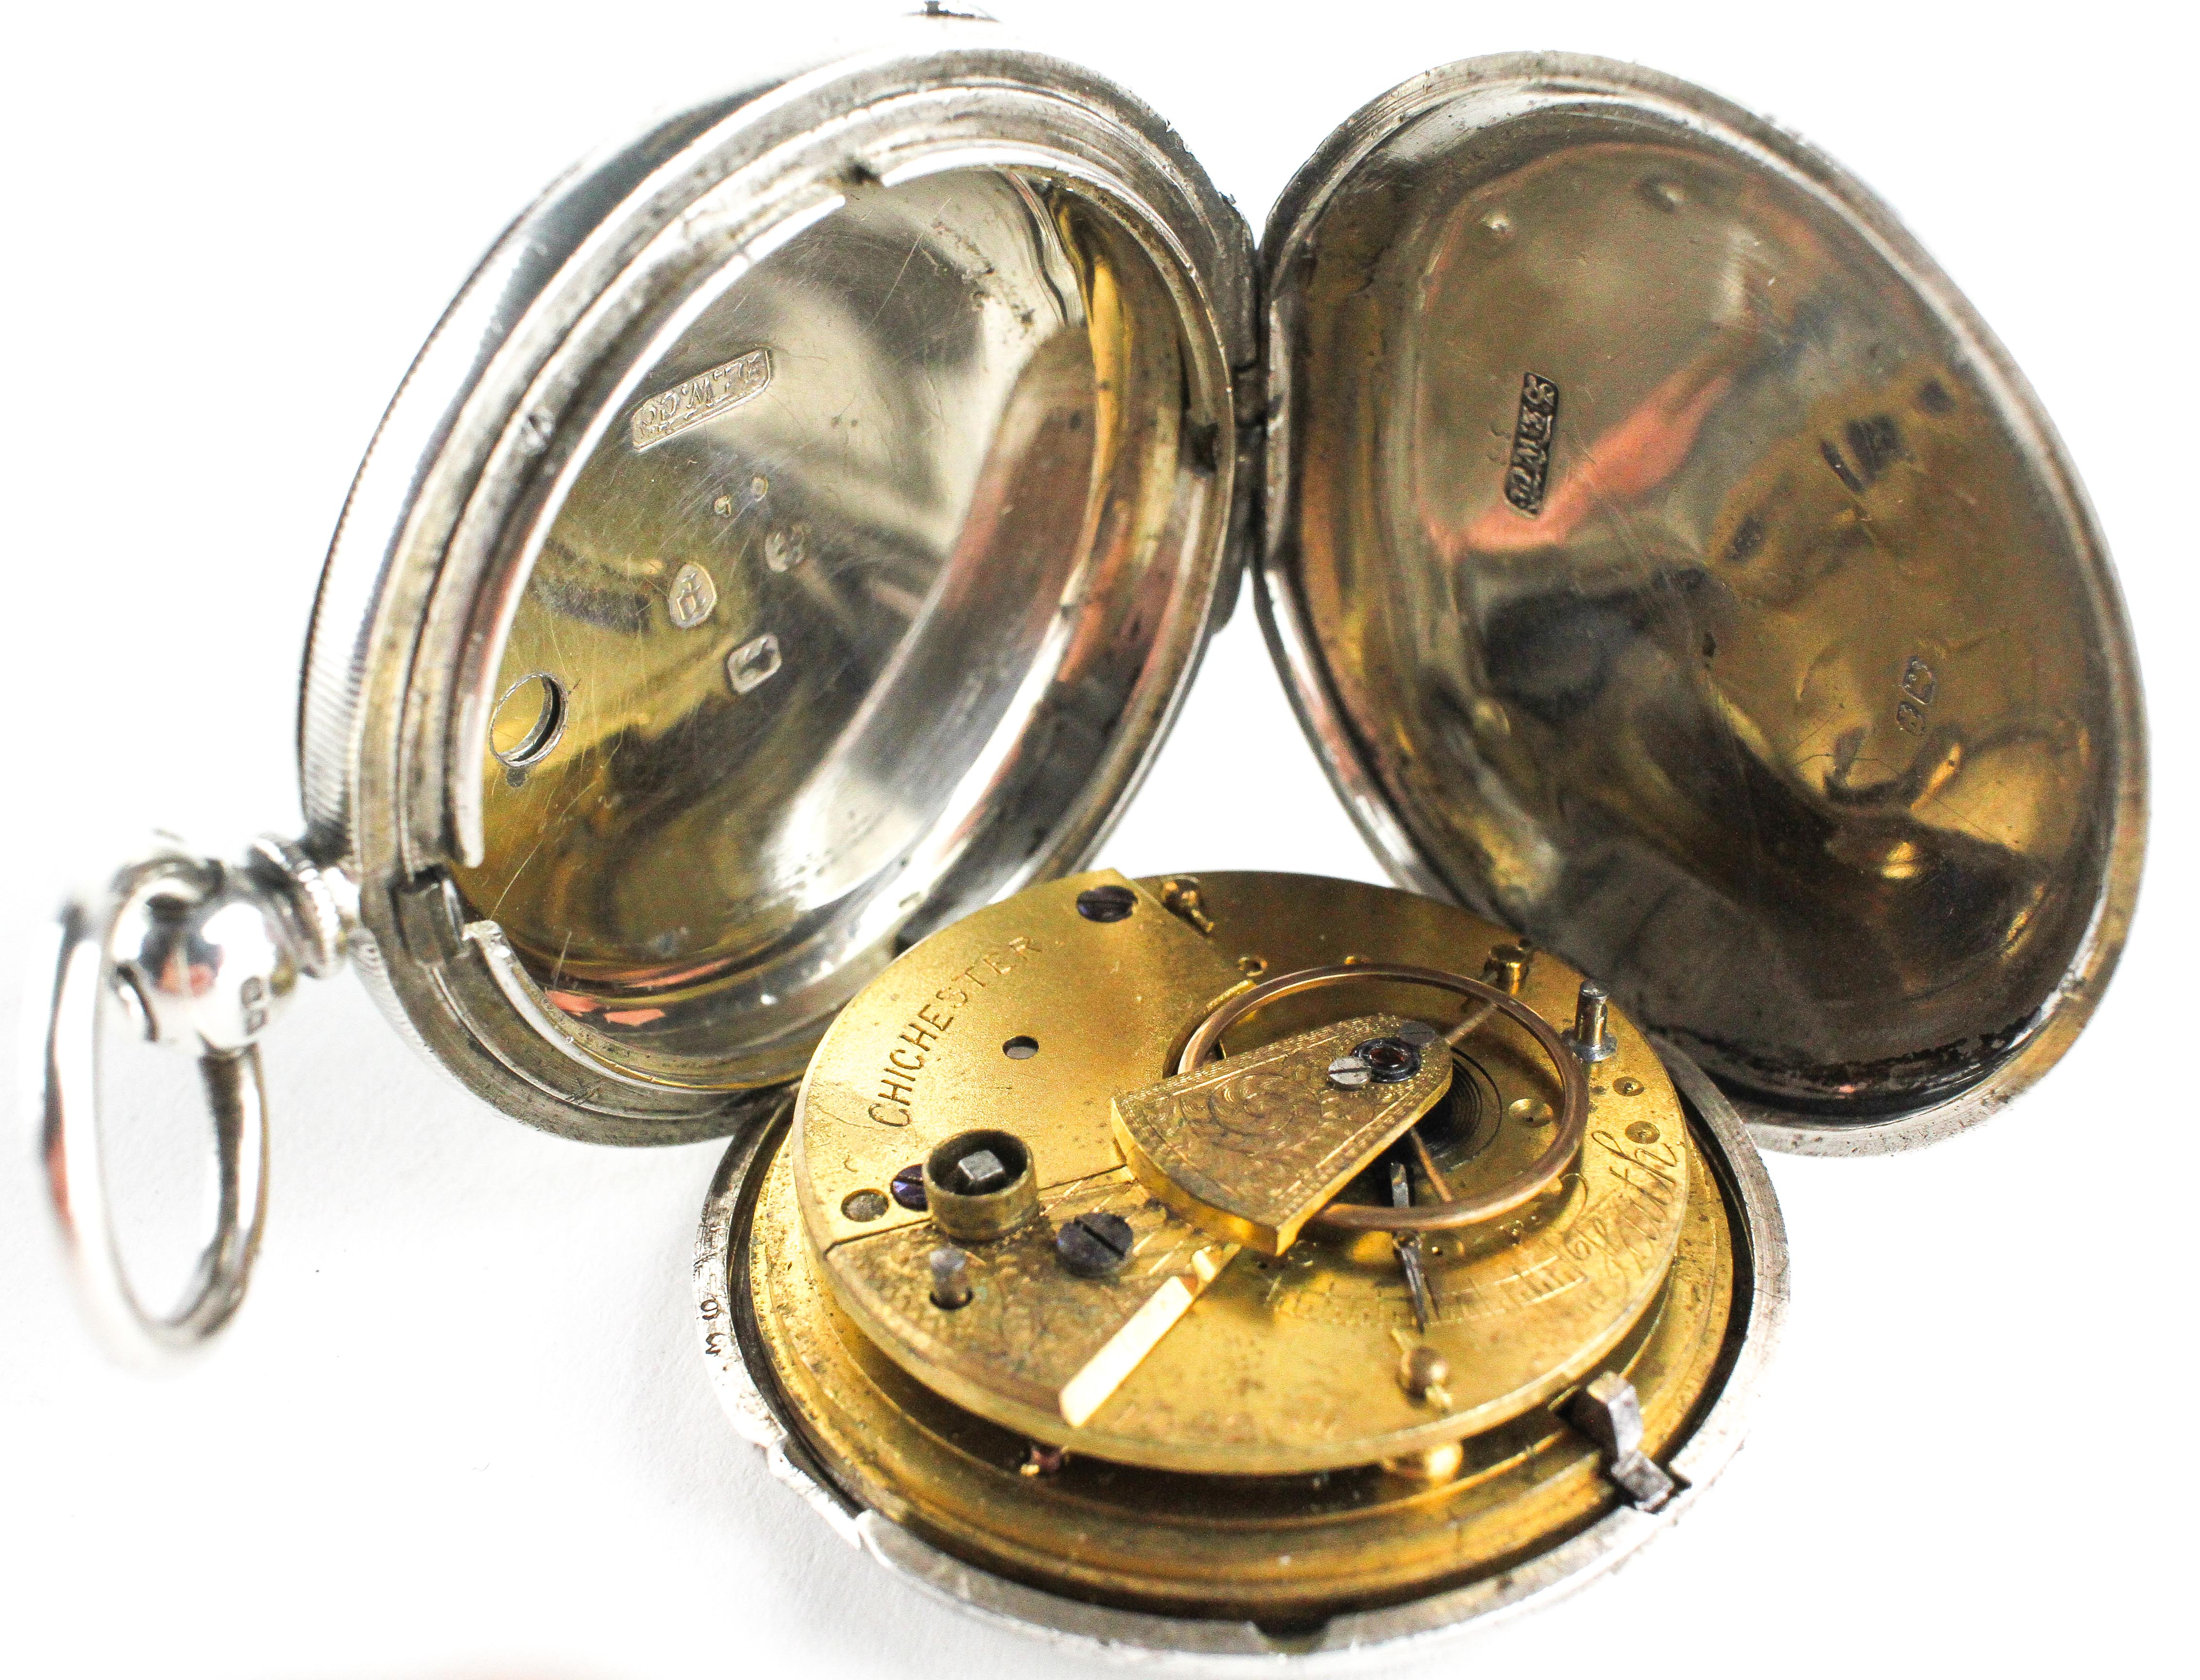 A full hunter pocket watch. Circular white dial with roman numerals. Key wound movement. - Image 2 of 2